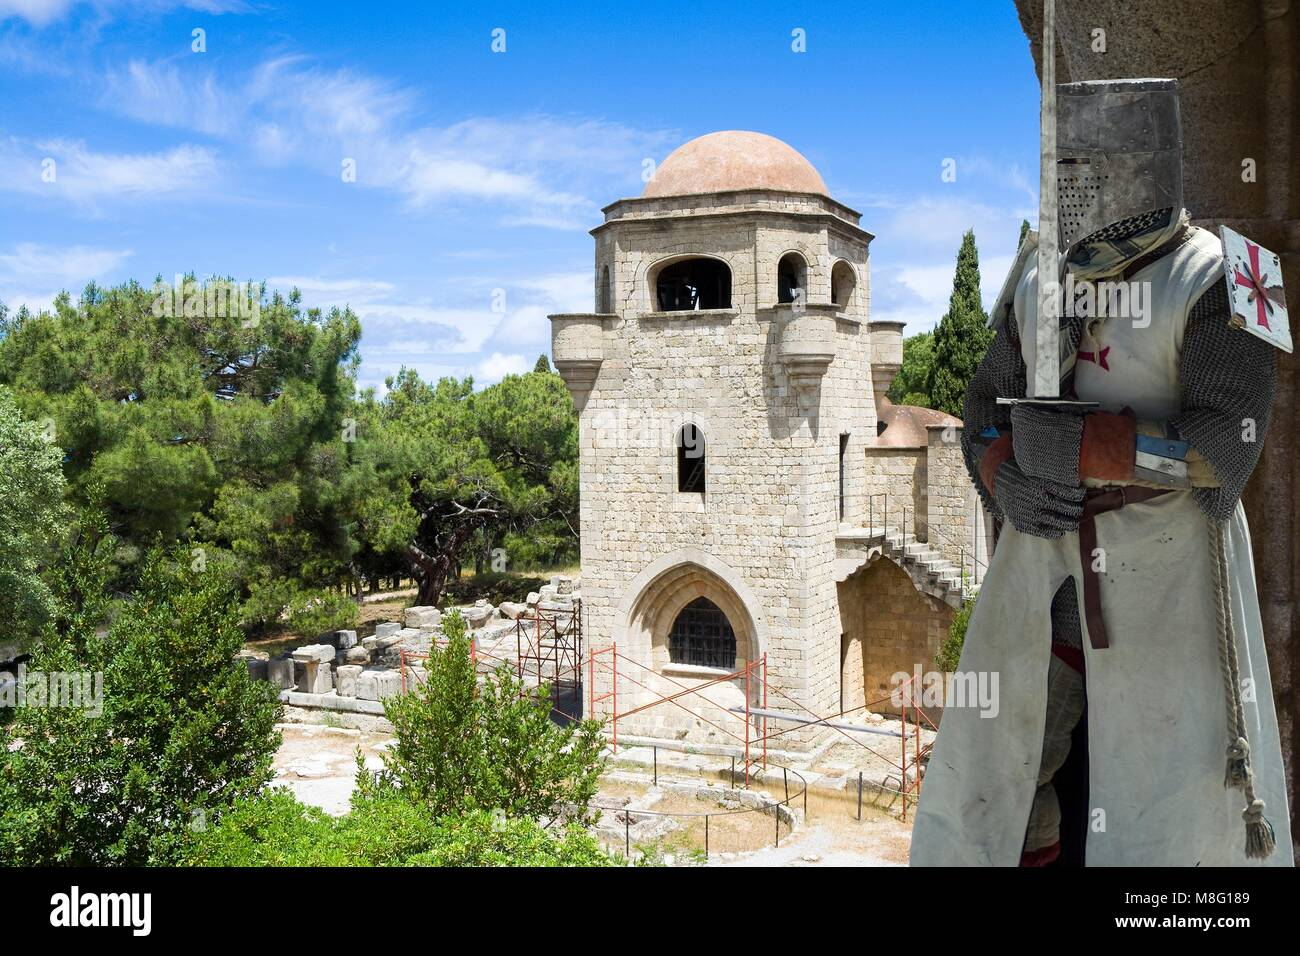 Medieval knight in Filerimos Monastery built by the Knights of Saint John, Rhodes Island, Greece - Stock Image